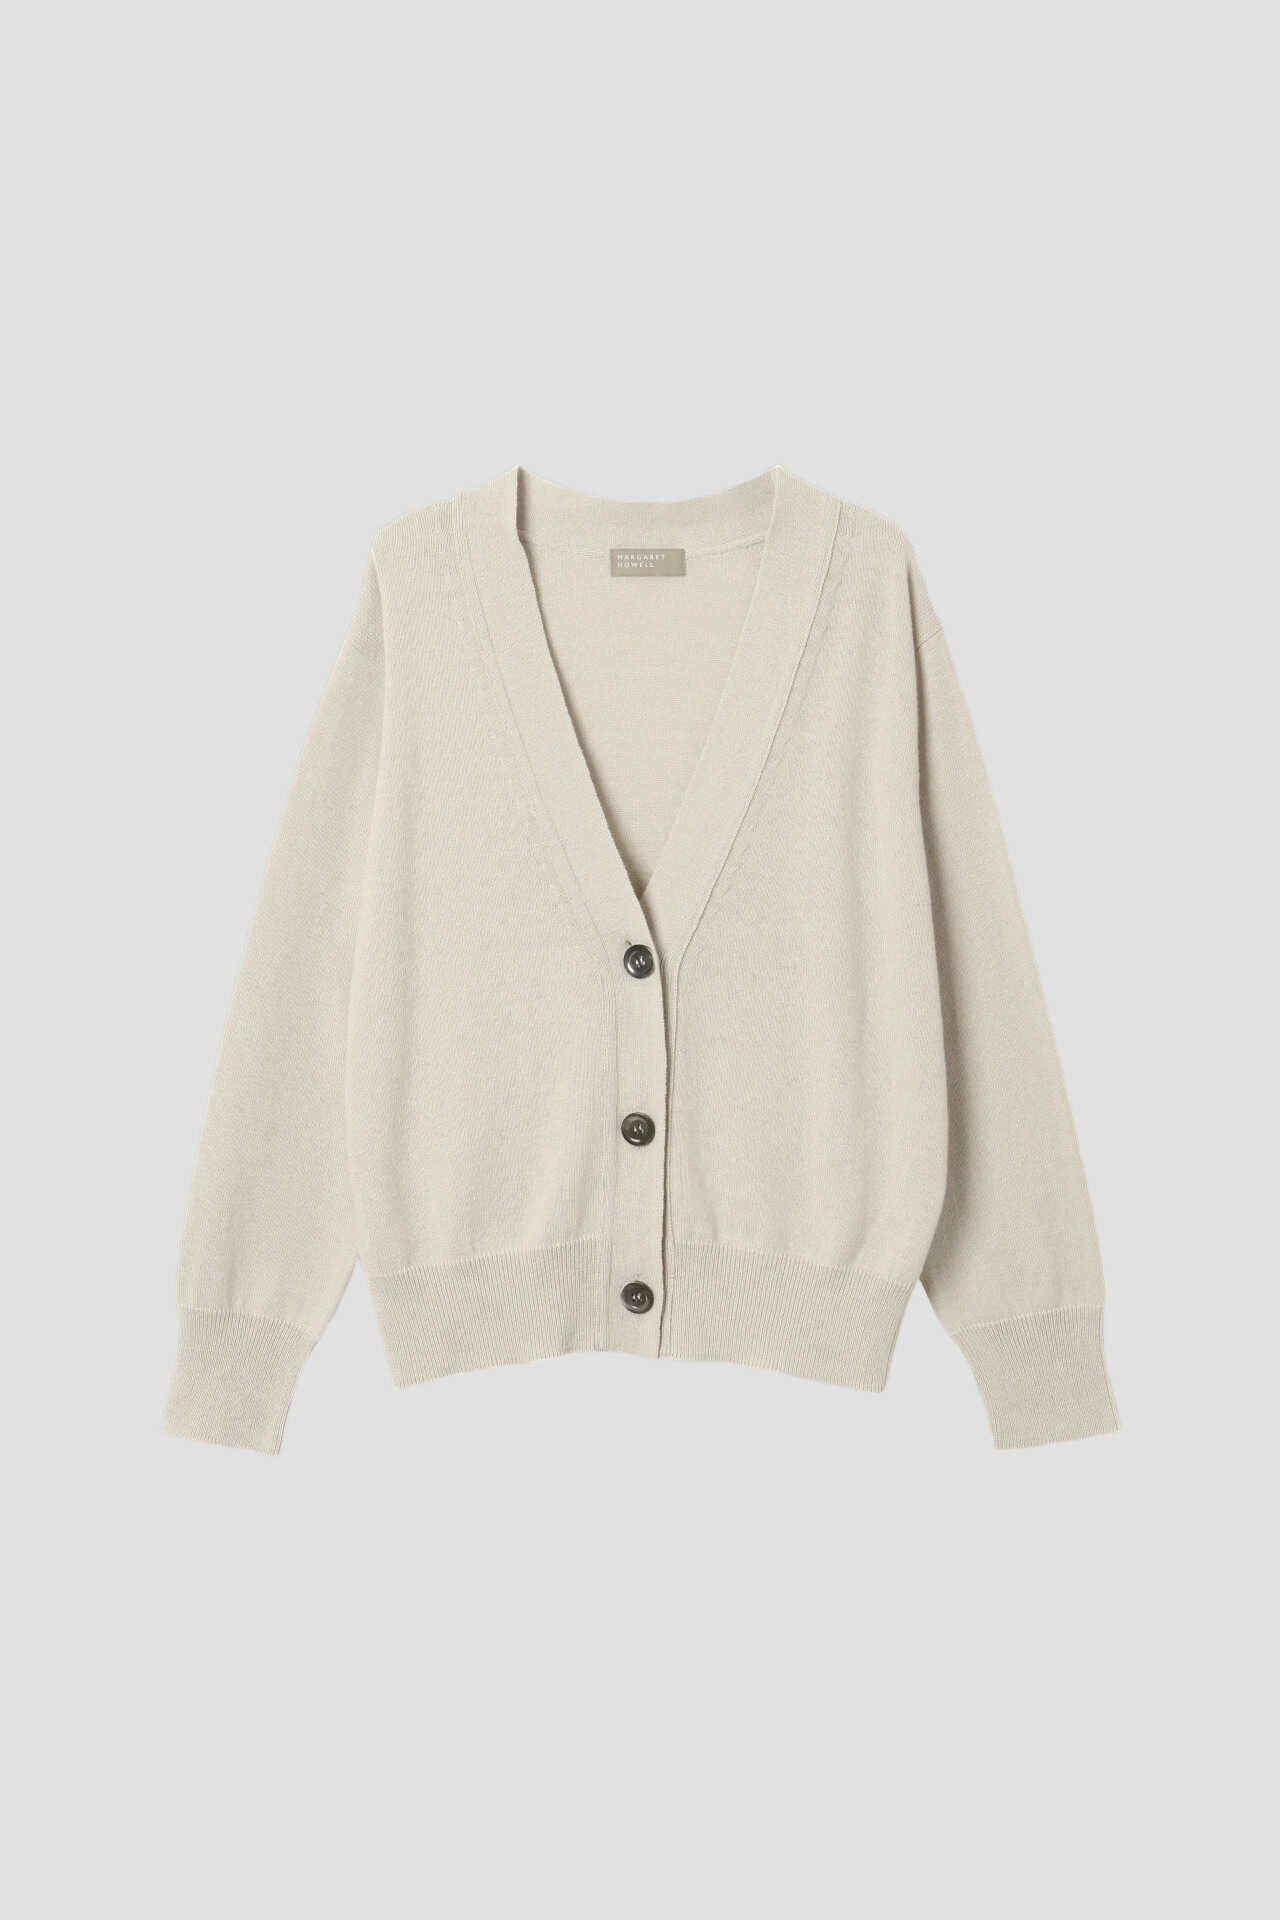 COTTON CASHMERE V NECK CARDIGAN1